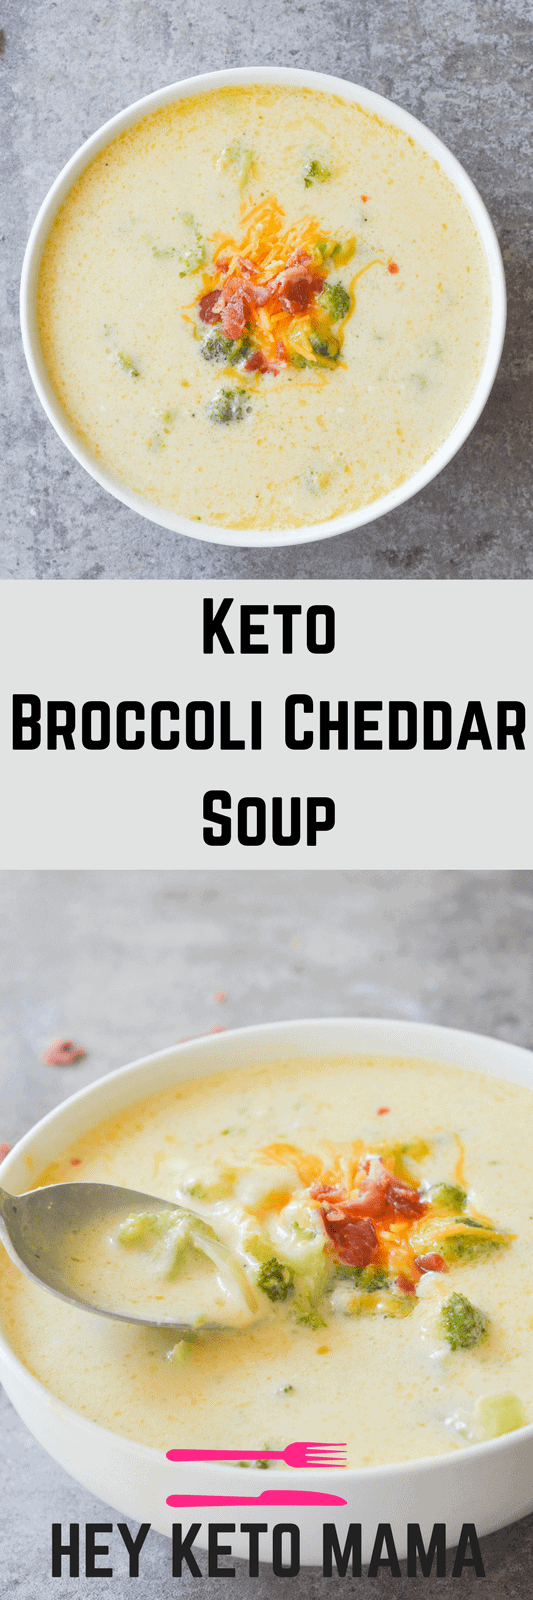 This Keto Broccoli Cheddar Soup is so yummy and filling, you won't even miss the potatoes! It's an excellent low carb option for any Fall meal! | heyketomama.com